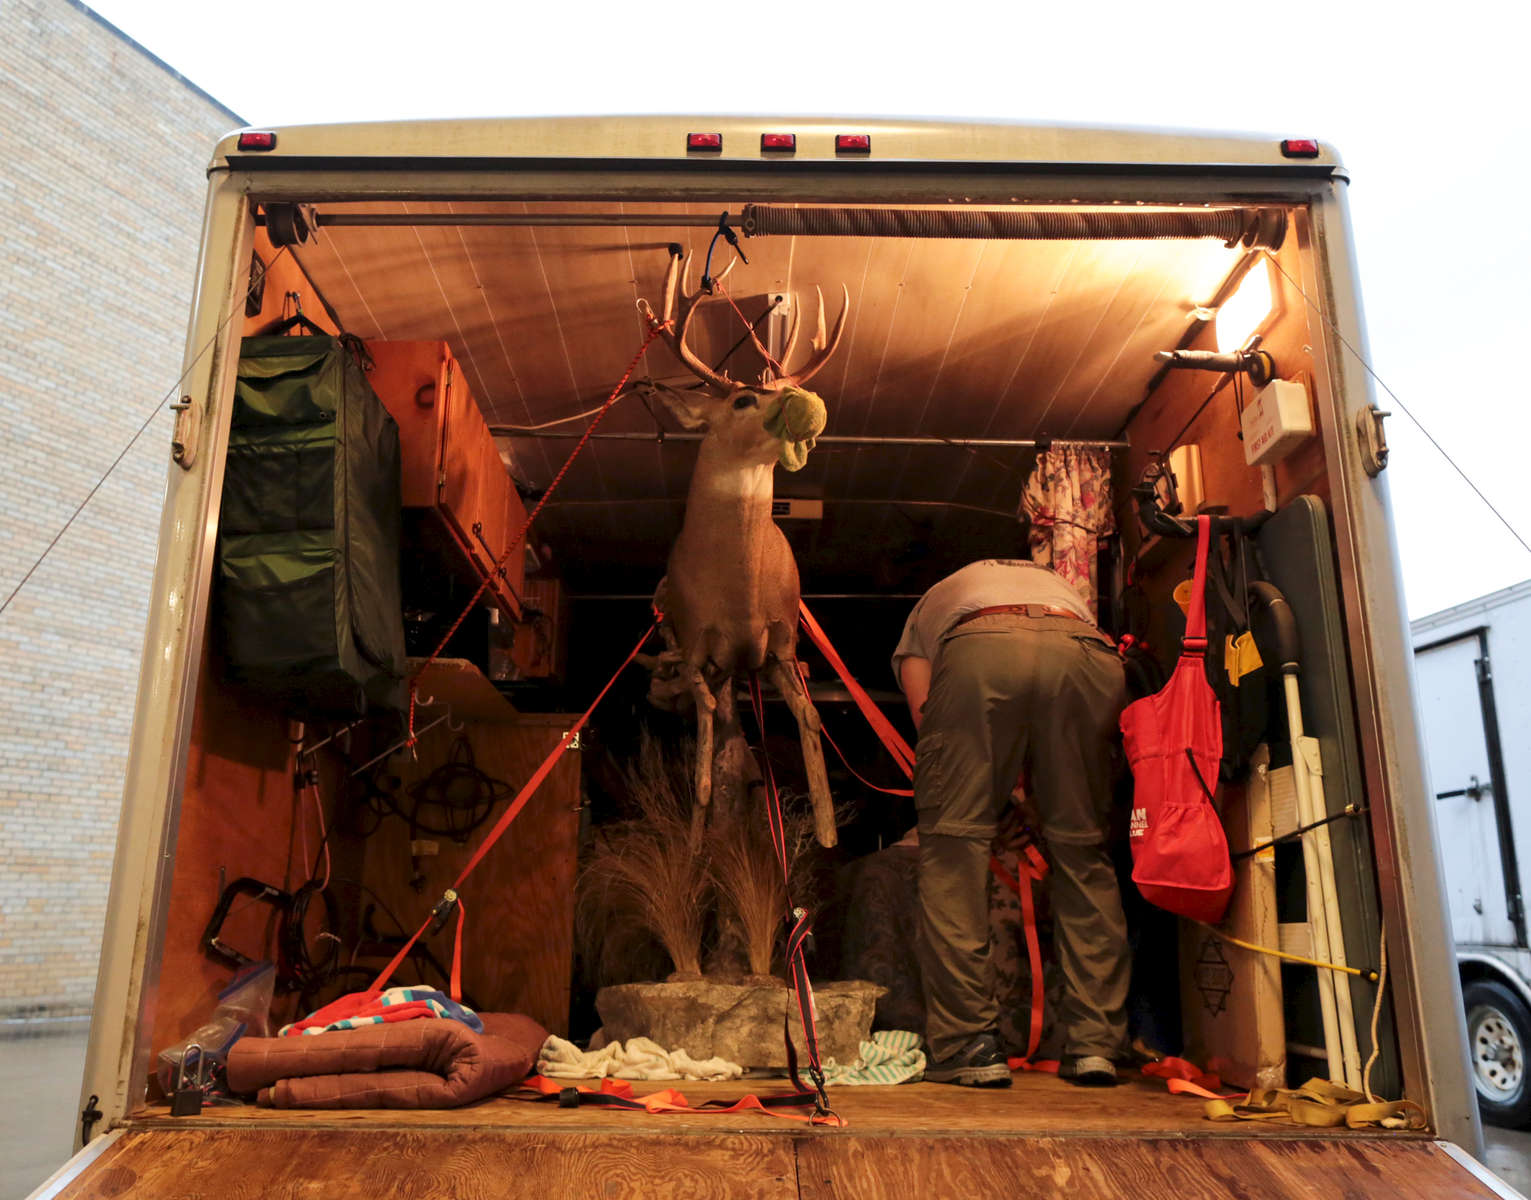 A taxidermist unloads his entry piece from his truck before submitting it for judging, at the beginning of the World Taxidermy & Fish Carving Championships, in Springfield, Missouri on May 1, 2019.